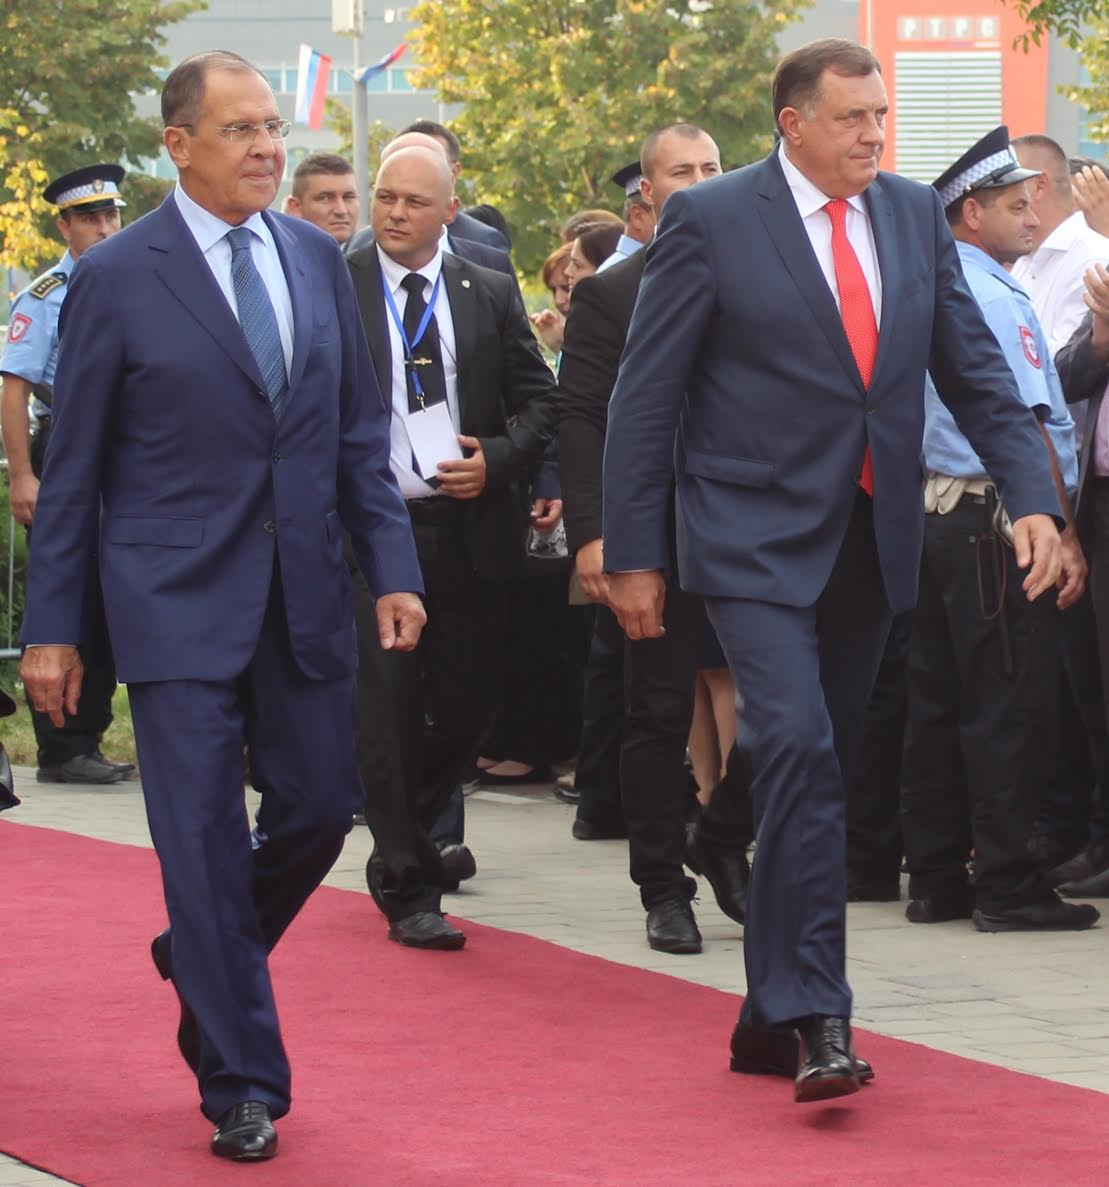 Lavrov reiterates that Russia supports BiH's territorial integrity